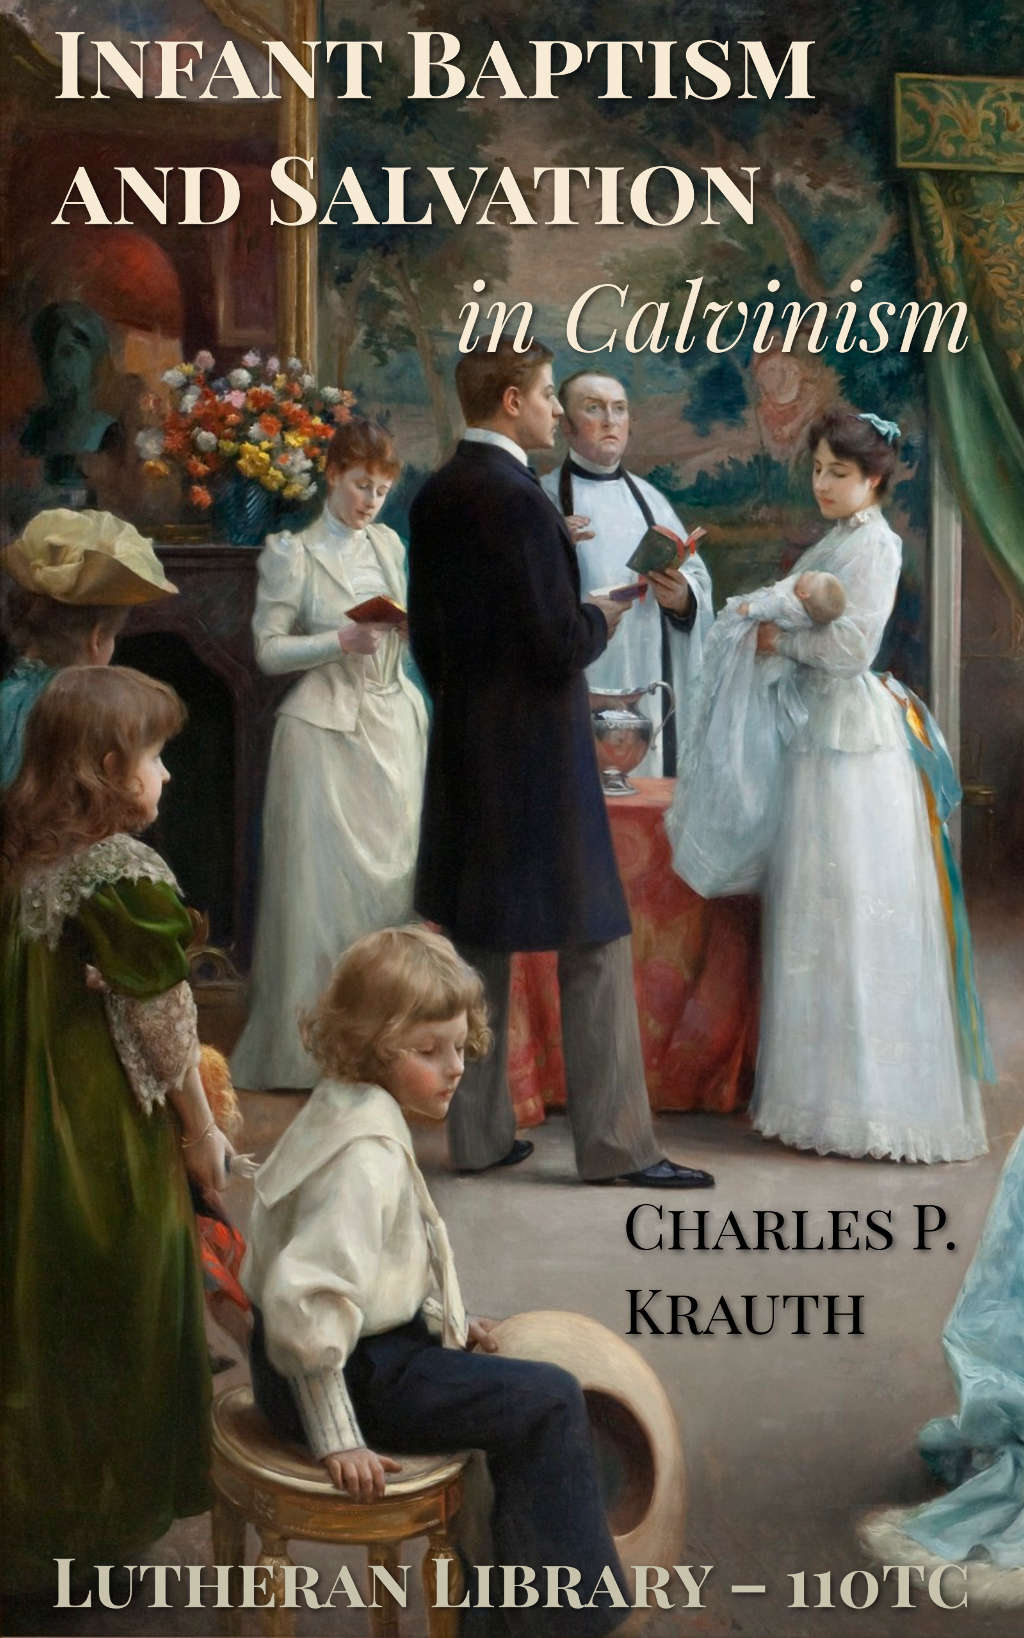 Infant Baptism and Infant Salvation in Calvinism by Charles P. Krauth